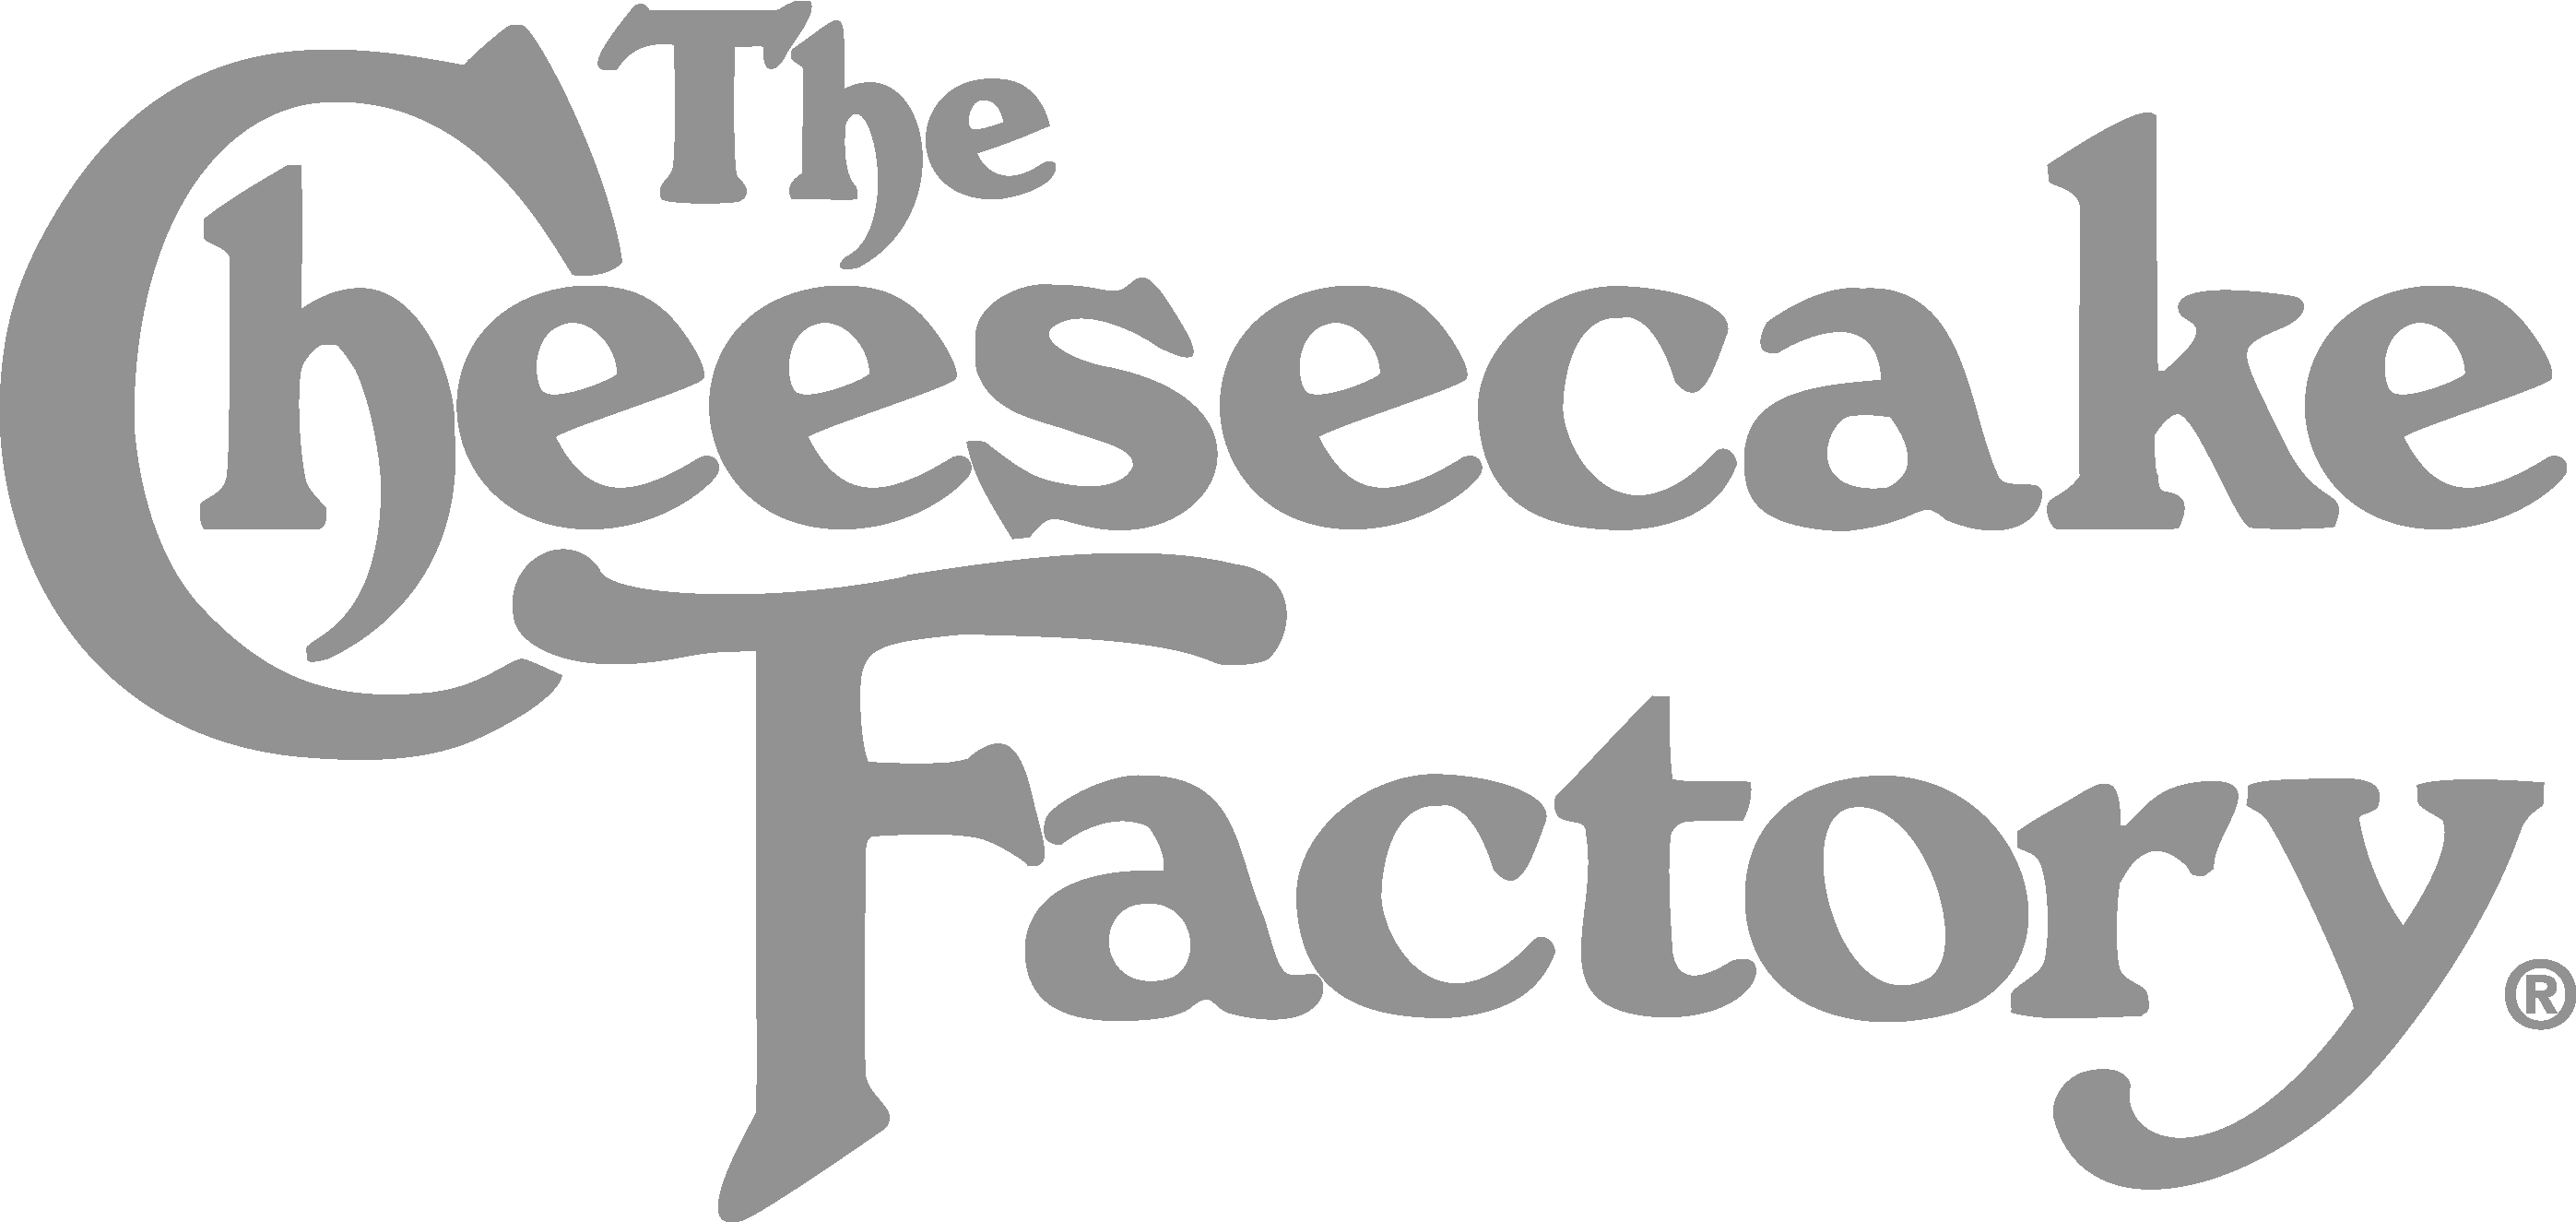 Cheesecake Factory's restaurant facilities management software